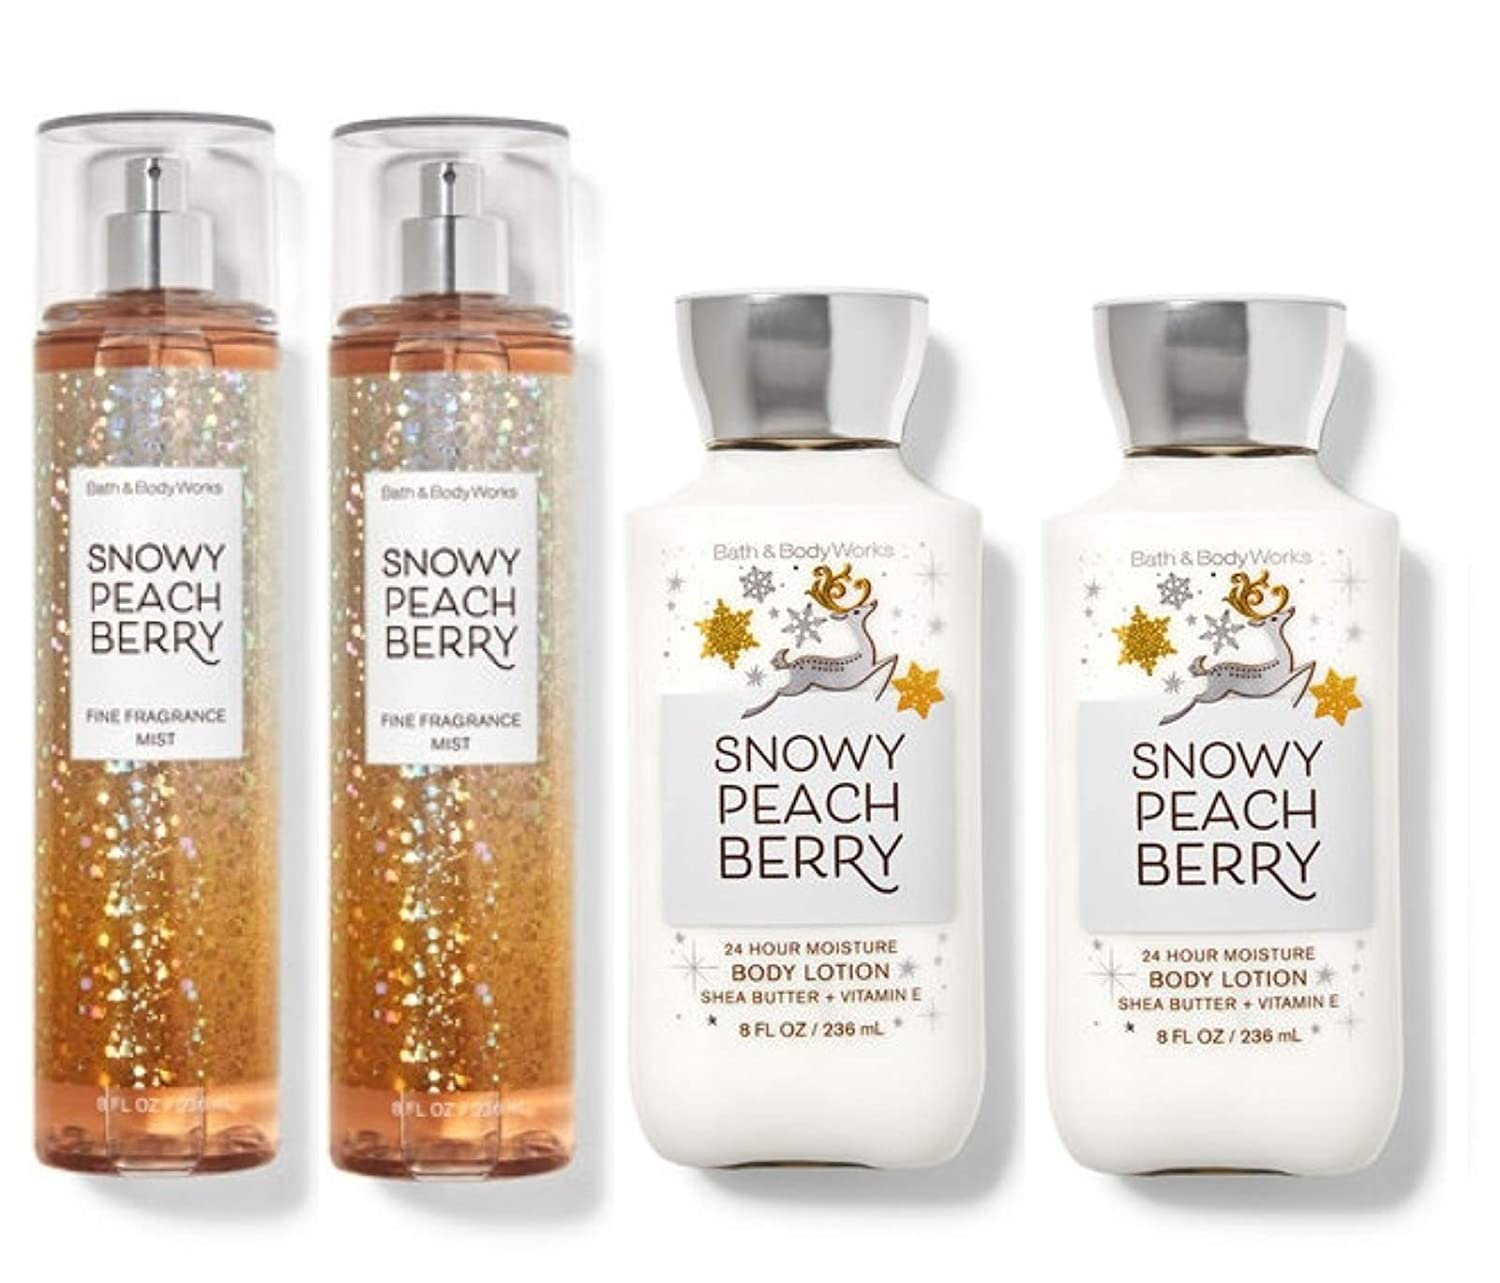 Bath and Body Works SNOWY PEACH Superlatite Super special price Pack Value 2 - Lotion BERRY